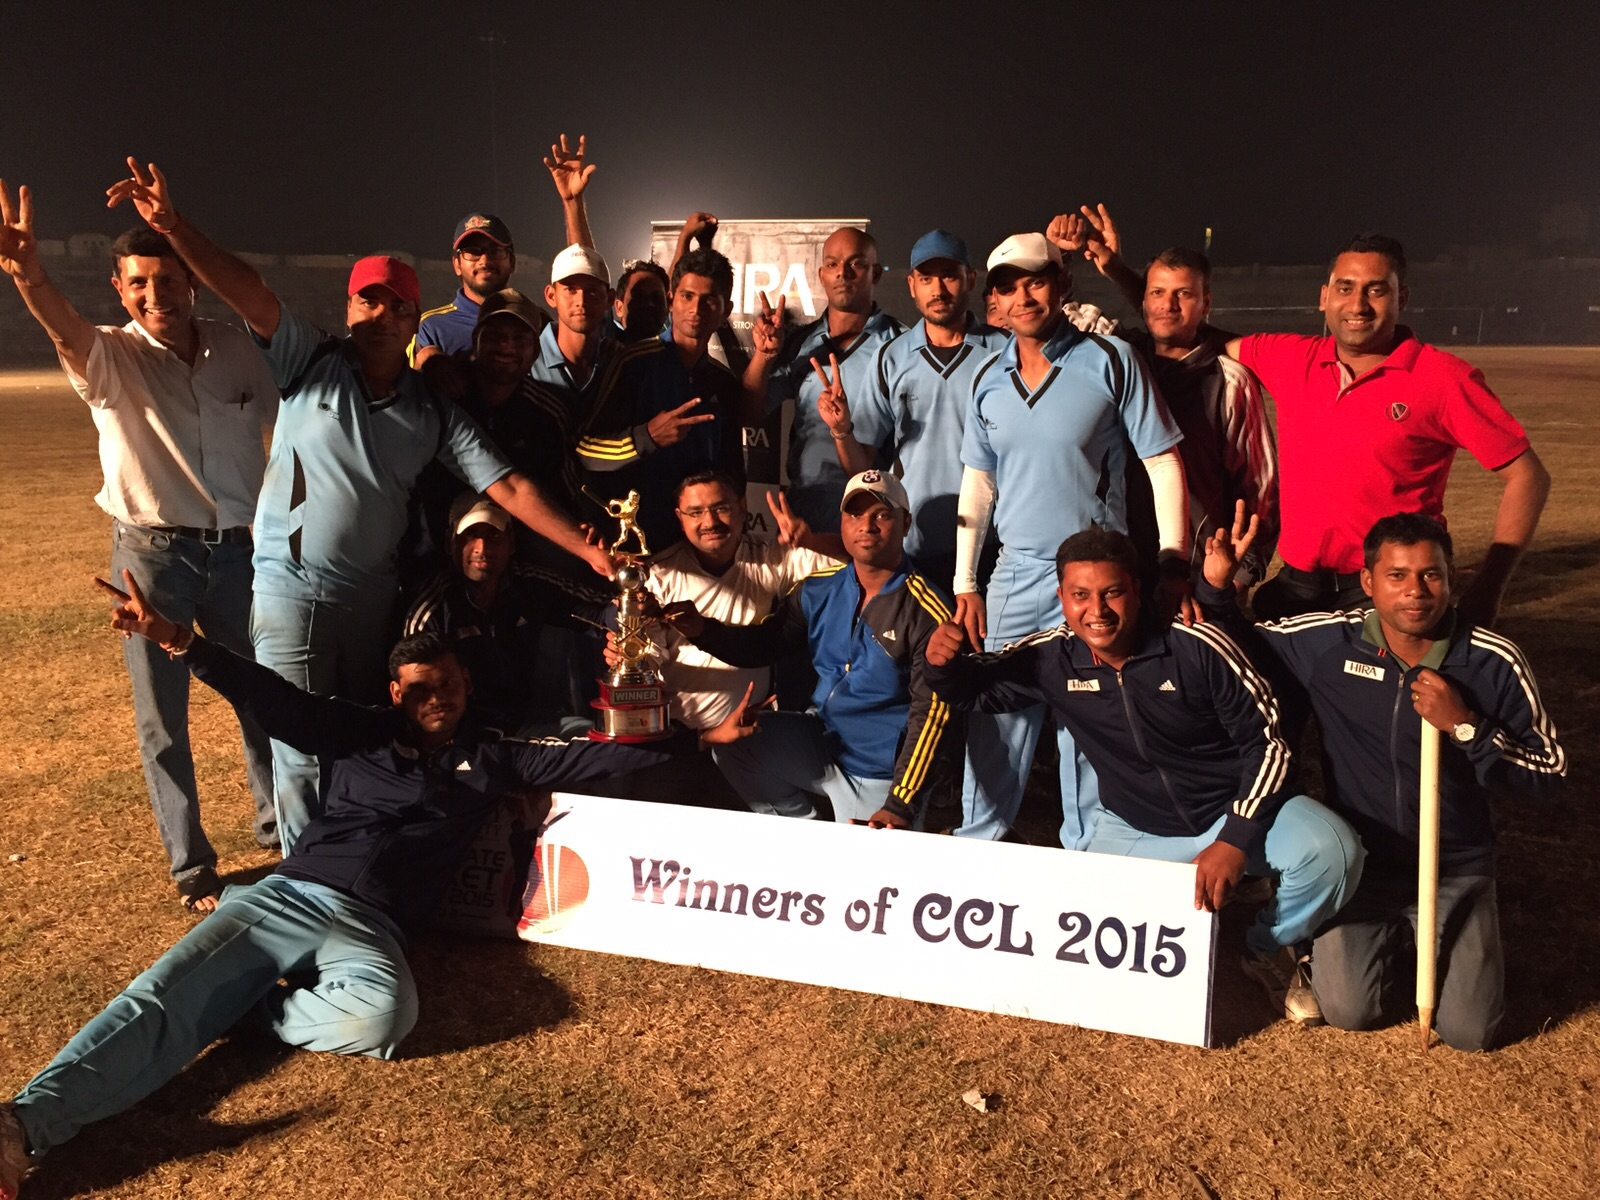 Glimpse of CCL 2015